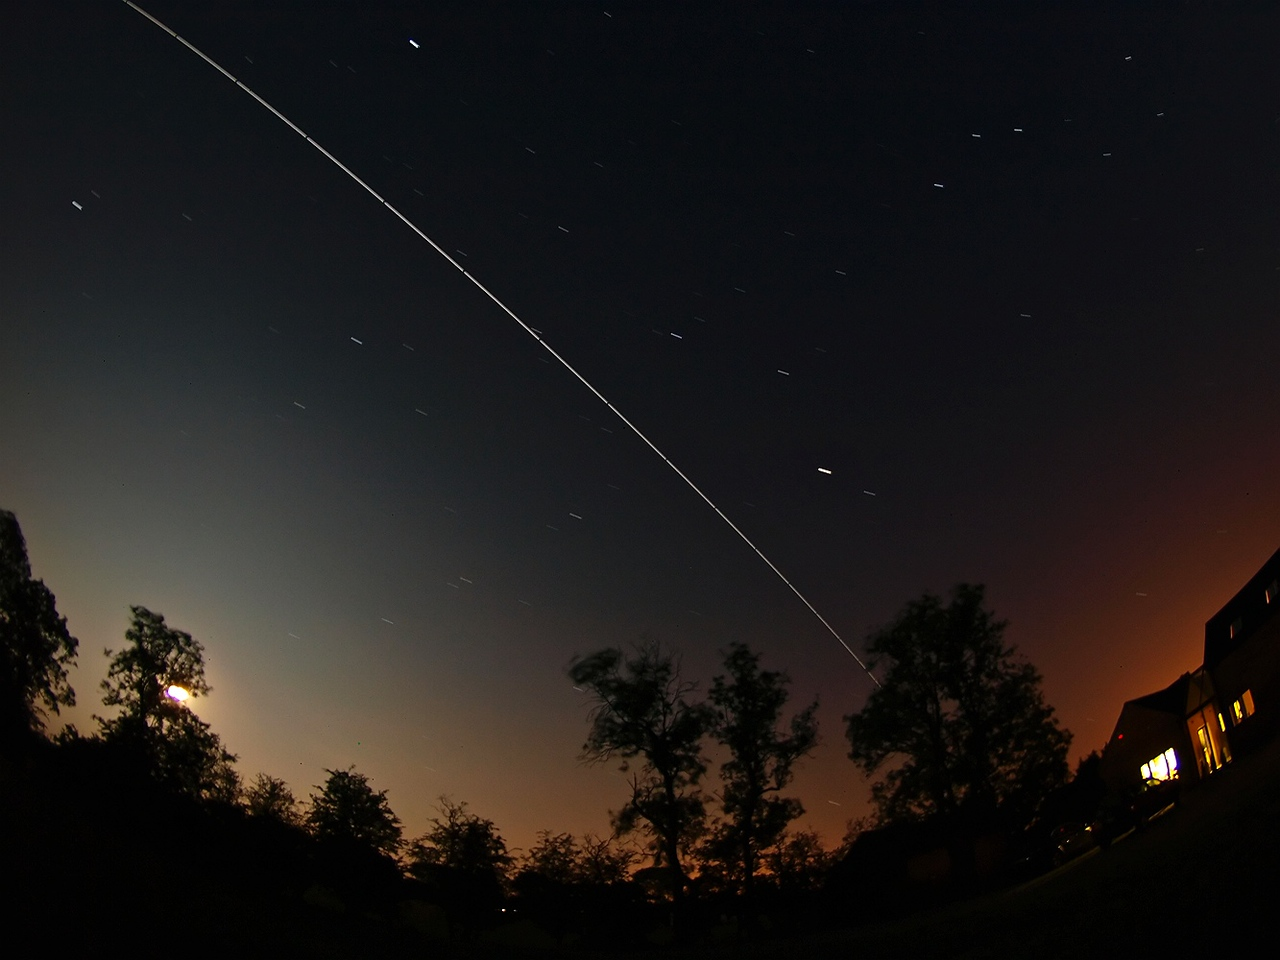 June 25/26 2010. International Space Station (ISS). The second and brightest of 4 passes over UK. A super bright -3.5. Olympus E3, 8mm fisheye, F3.5, 10s